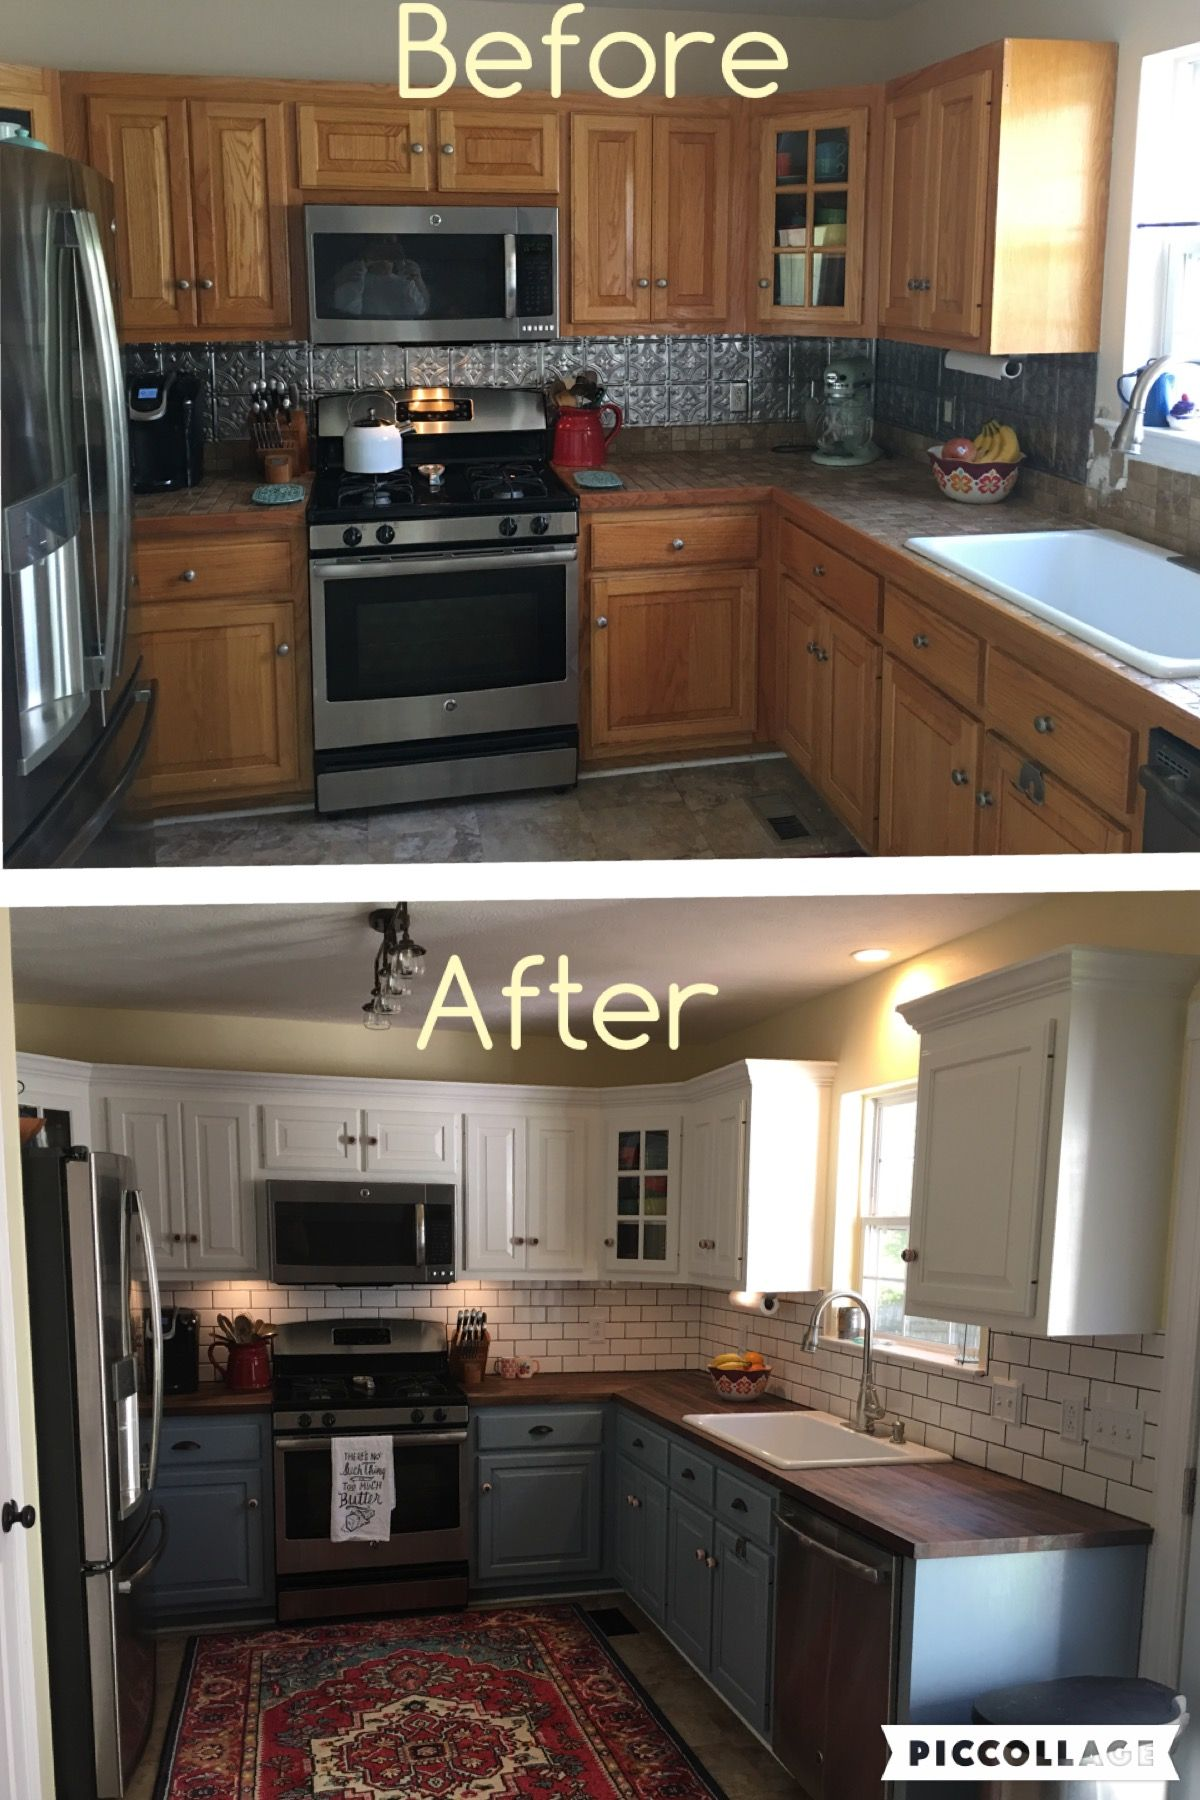 Two Toned Cabinets. Valspar Cabinet Enamel From Lowes U003d Successful Kitchen  Updating! Best Cabinet Paint By Far!